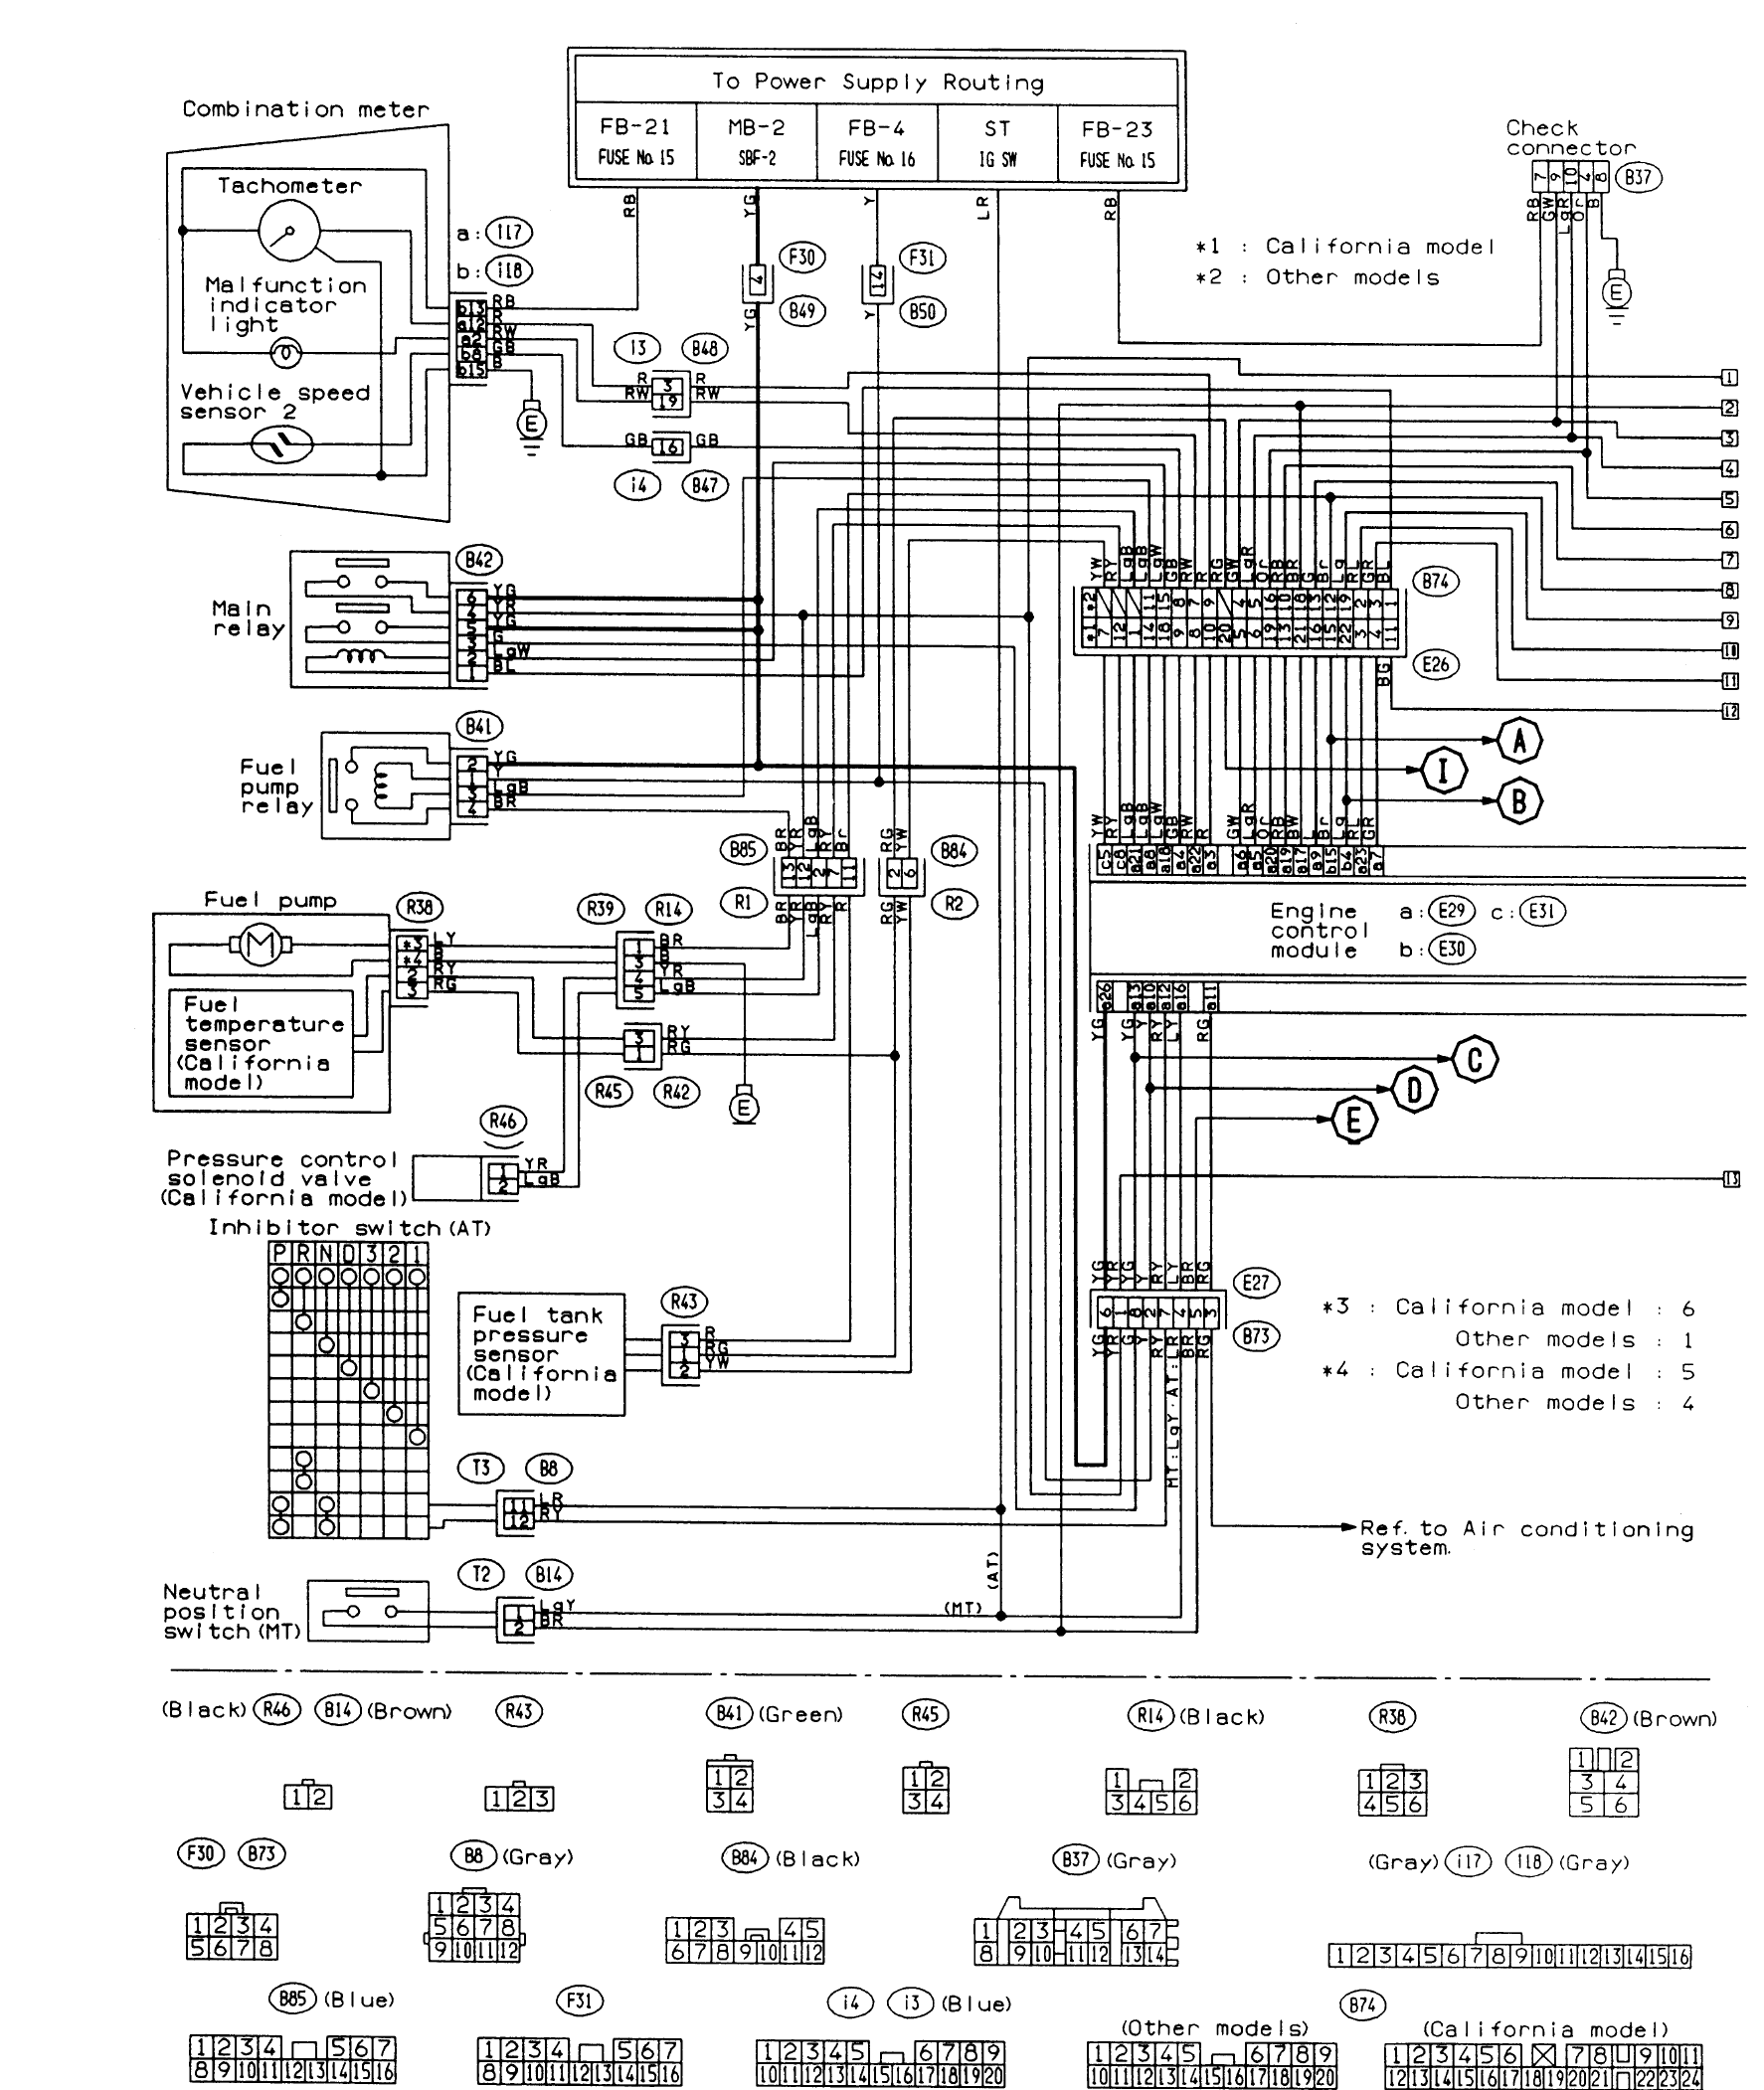 electrical diagram for ac unit in 2009 subaru forester. Black Bedroom Furniture Sets. Home Design Ideas